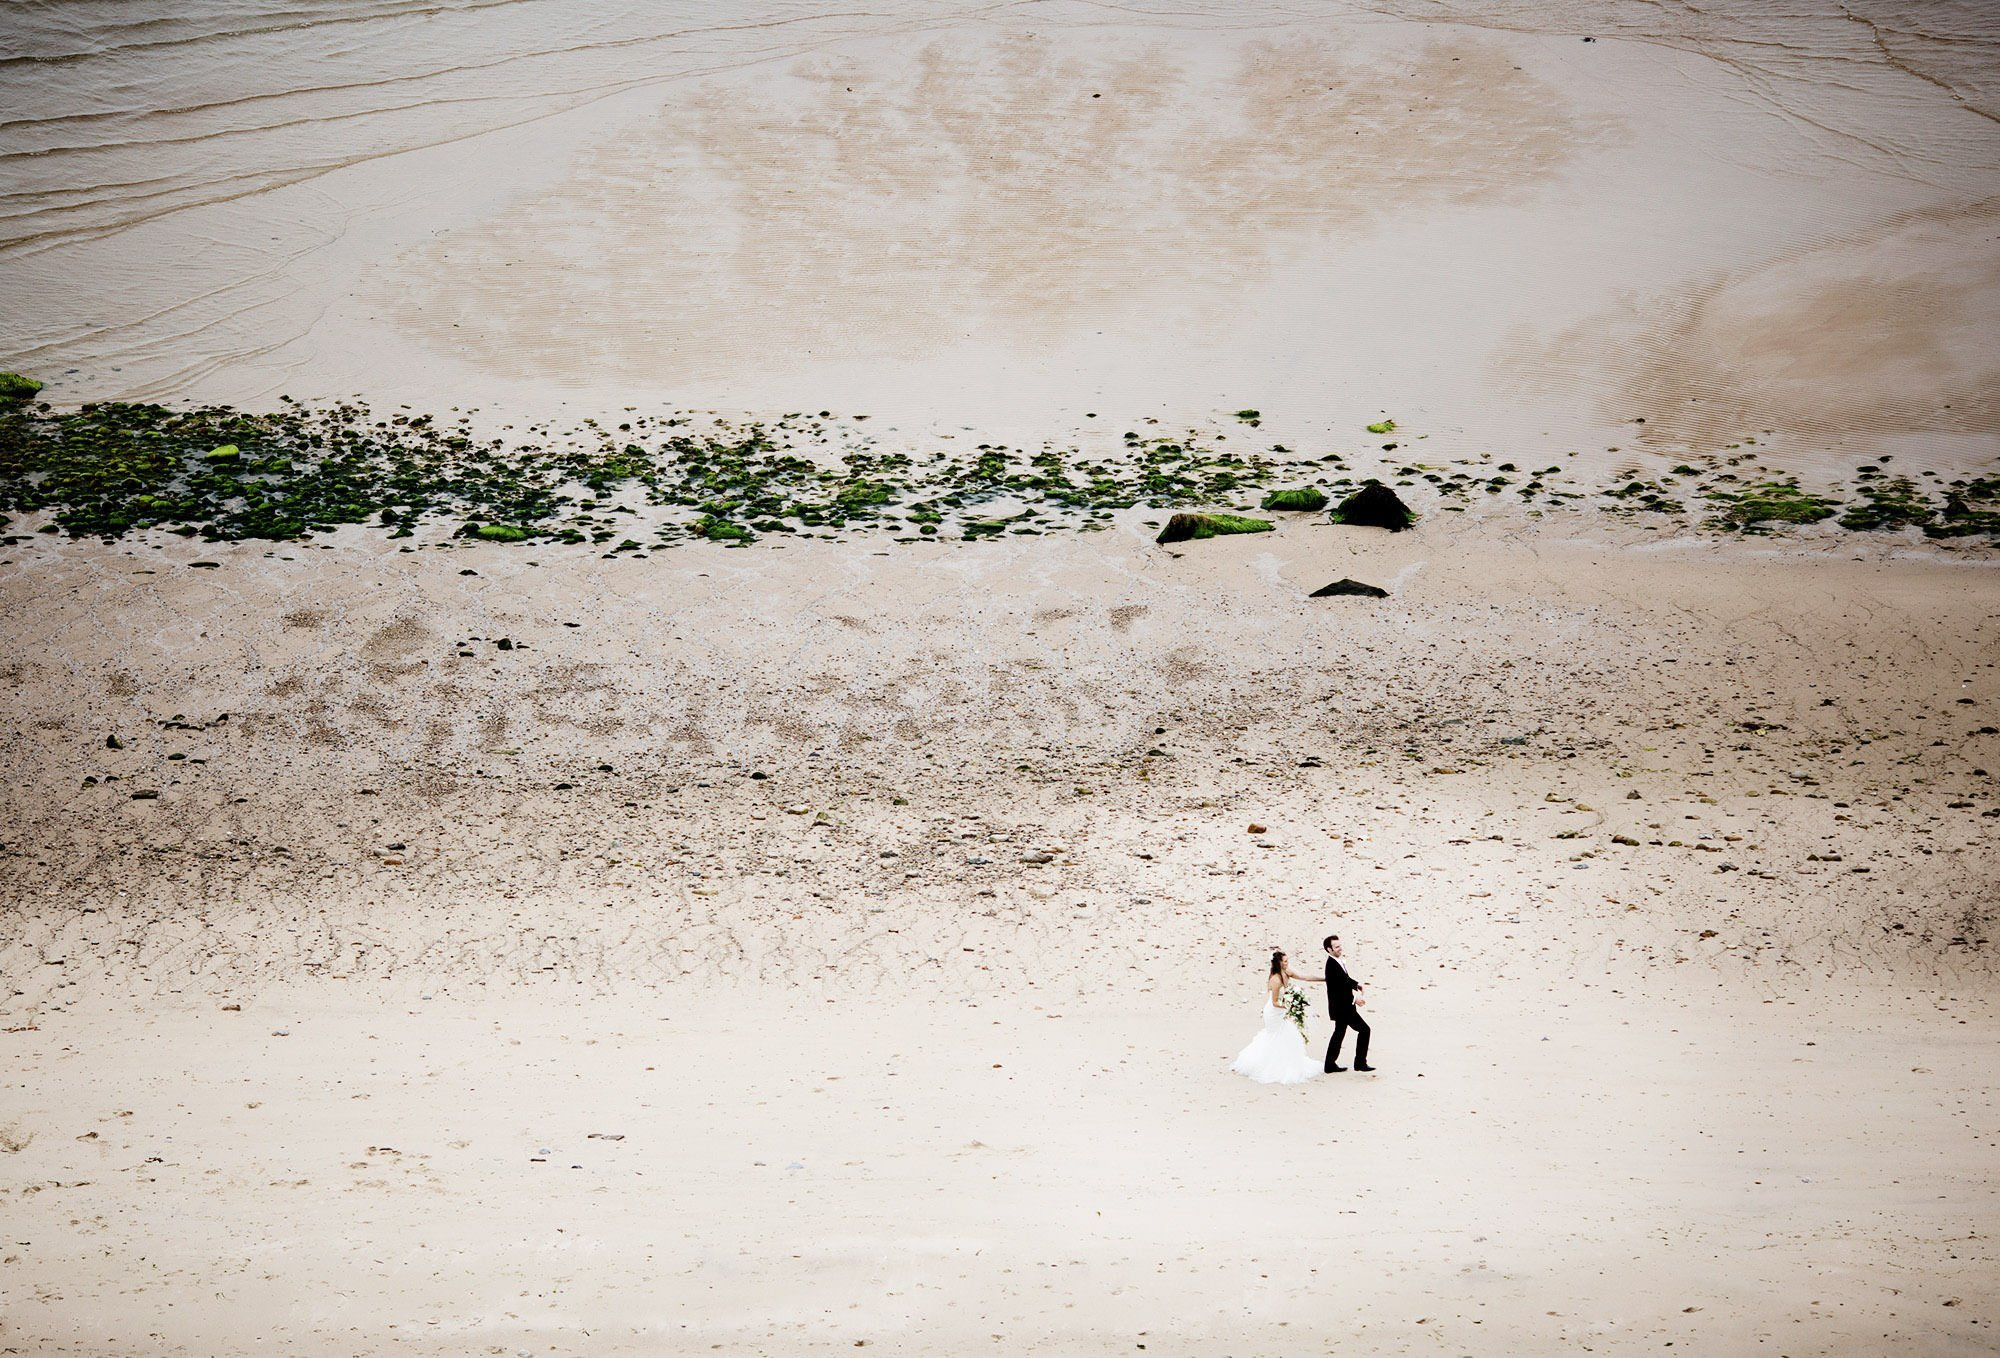 The bride and groom walk down the beach during the cocktail hour of their White Cliffs Country Club wedding.